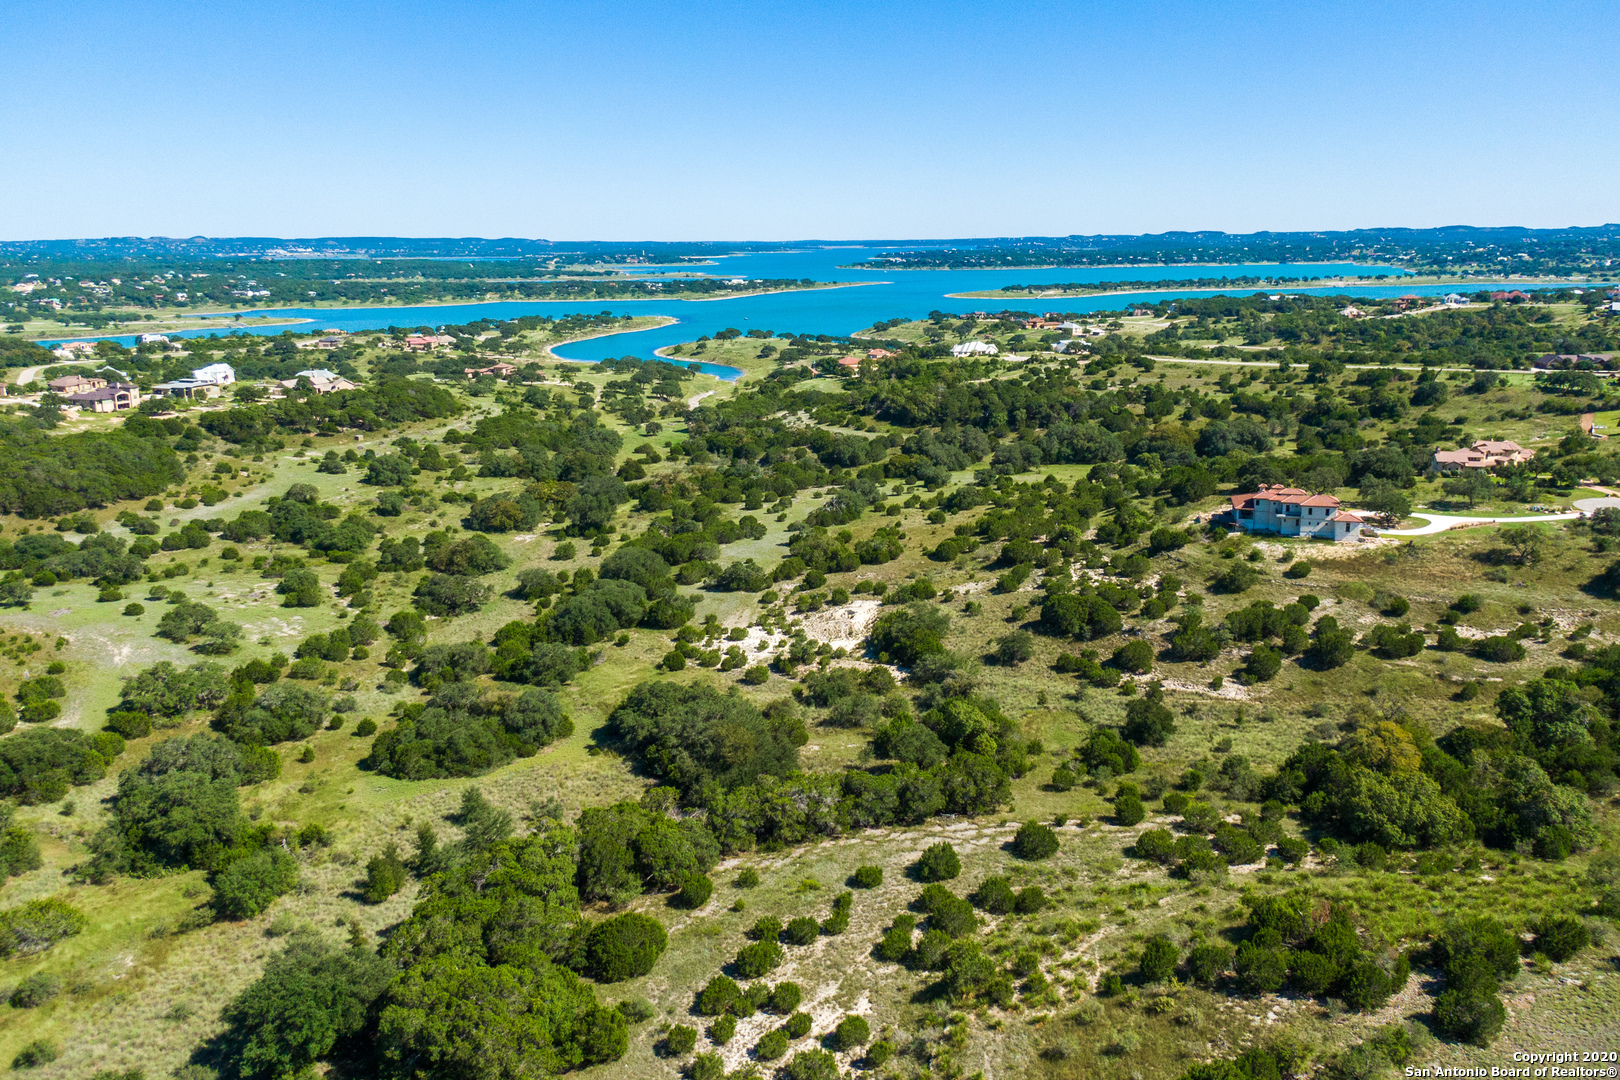 Unique and picturesque 4.59 acre lot with unlimited potential to build your dream home within the premier subdivision of Mystic Shores!  The topography is gently sloping to the back with an abundance of mature trees allowing for seclusion, while enjoying the peaceful hill country view from your back patio.  Lot offers a lake view to the East side of the property and panoramic country view from the back.  This is a one of a kind lake community with top notch amenities including clubhouse, community pool, tennis courts, private lake/river park, walking trails